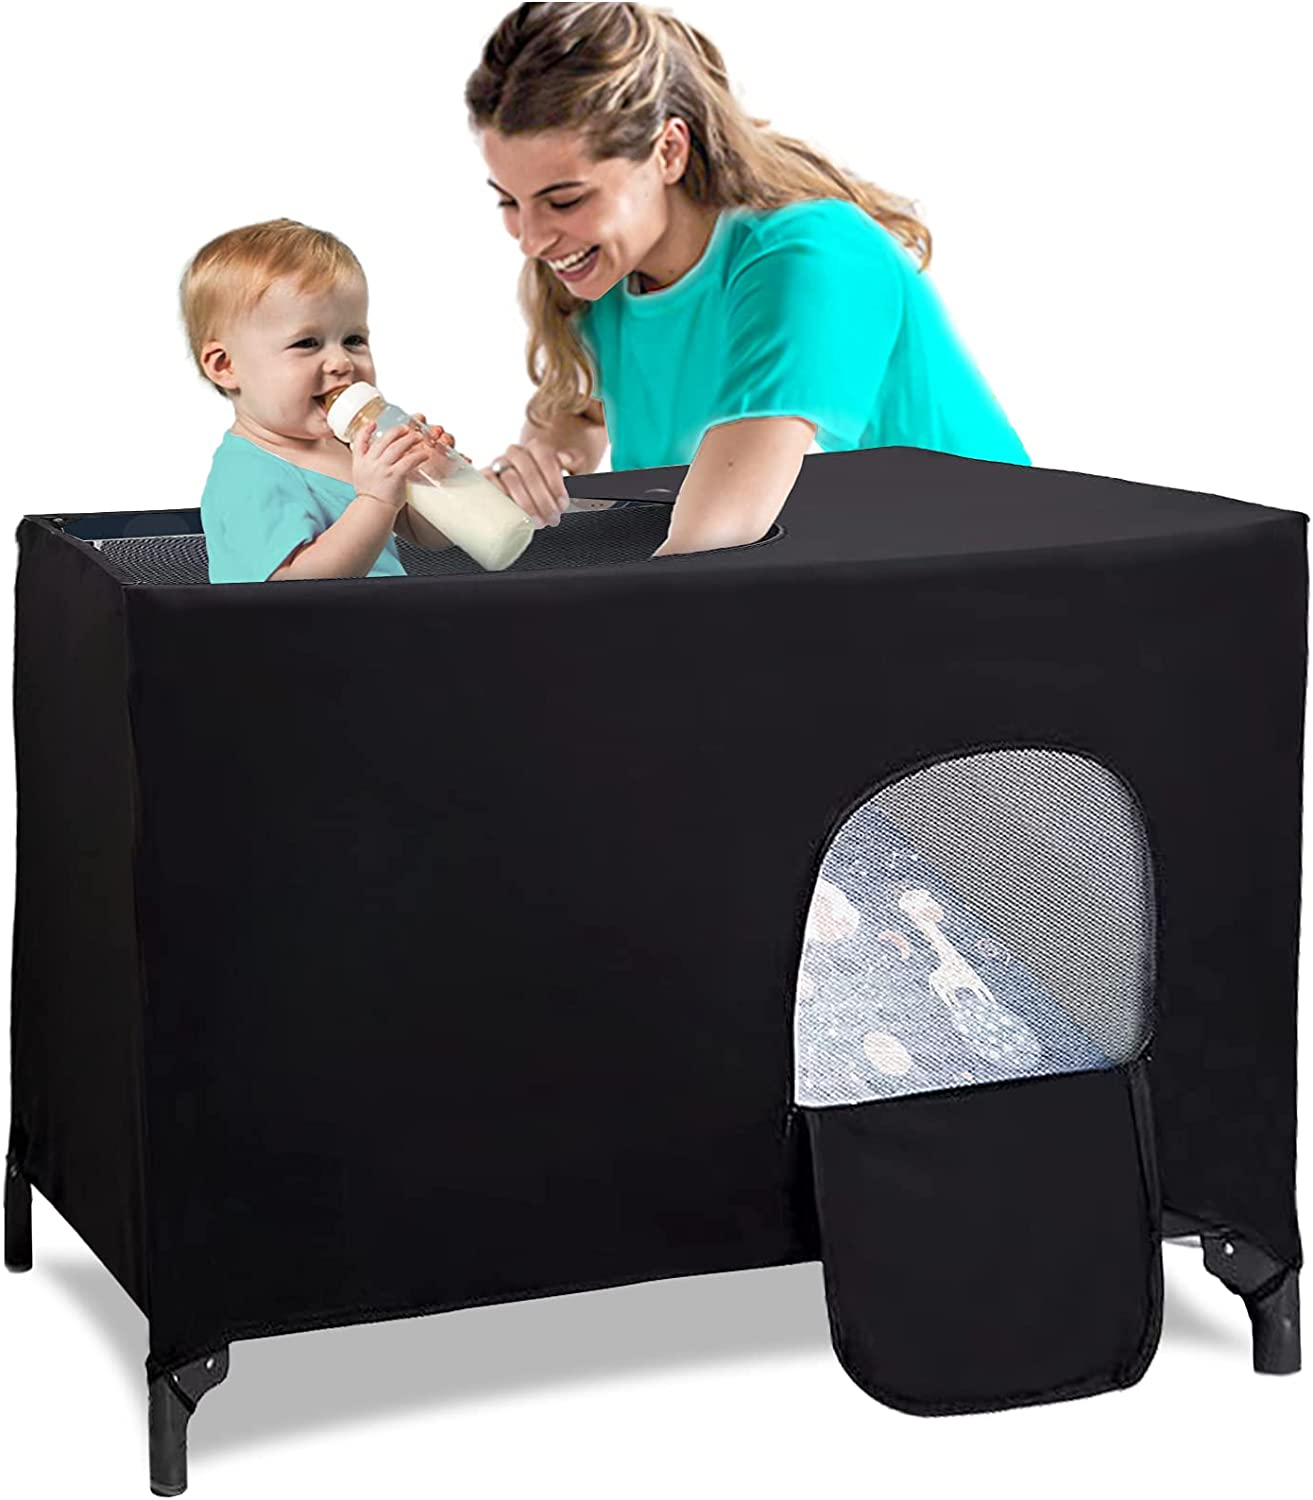 Blackout Cover for Pack N Play, Stretchy Breathable Travel Crib Canopy for Playard, Baby Darkening Crib Tent and Shade for Safeguard Indoor or Outdoor Sleeping, Playing, Napping